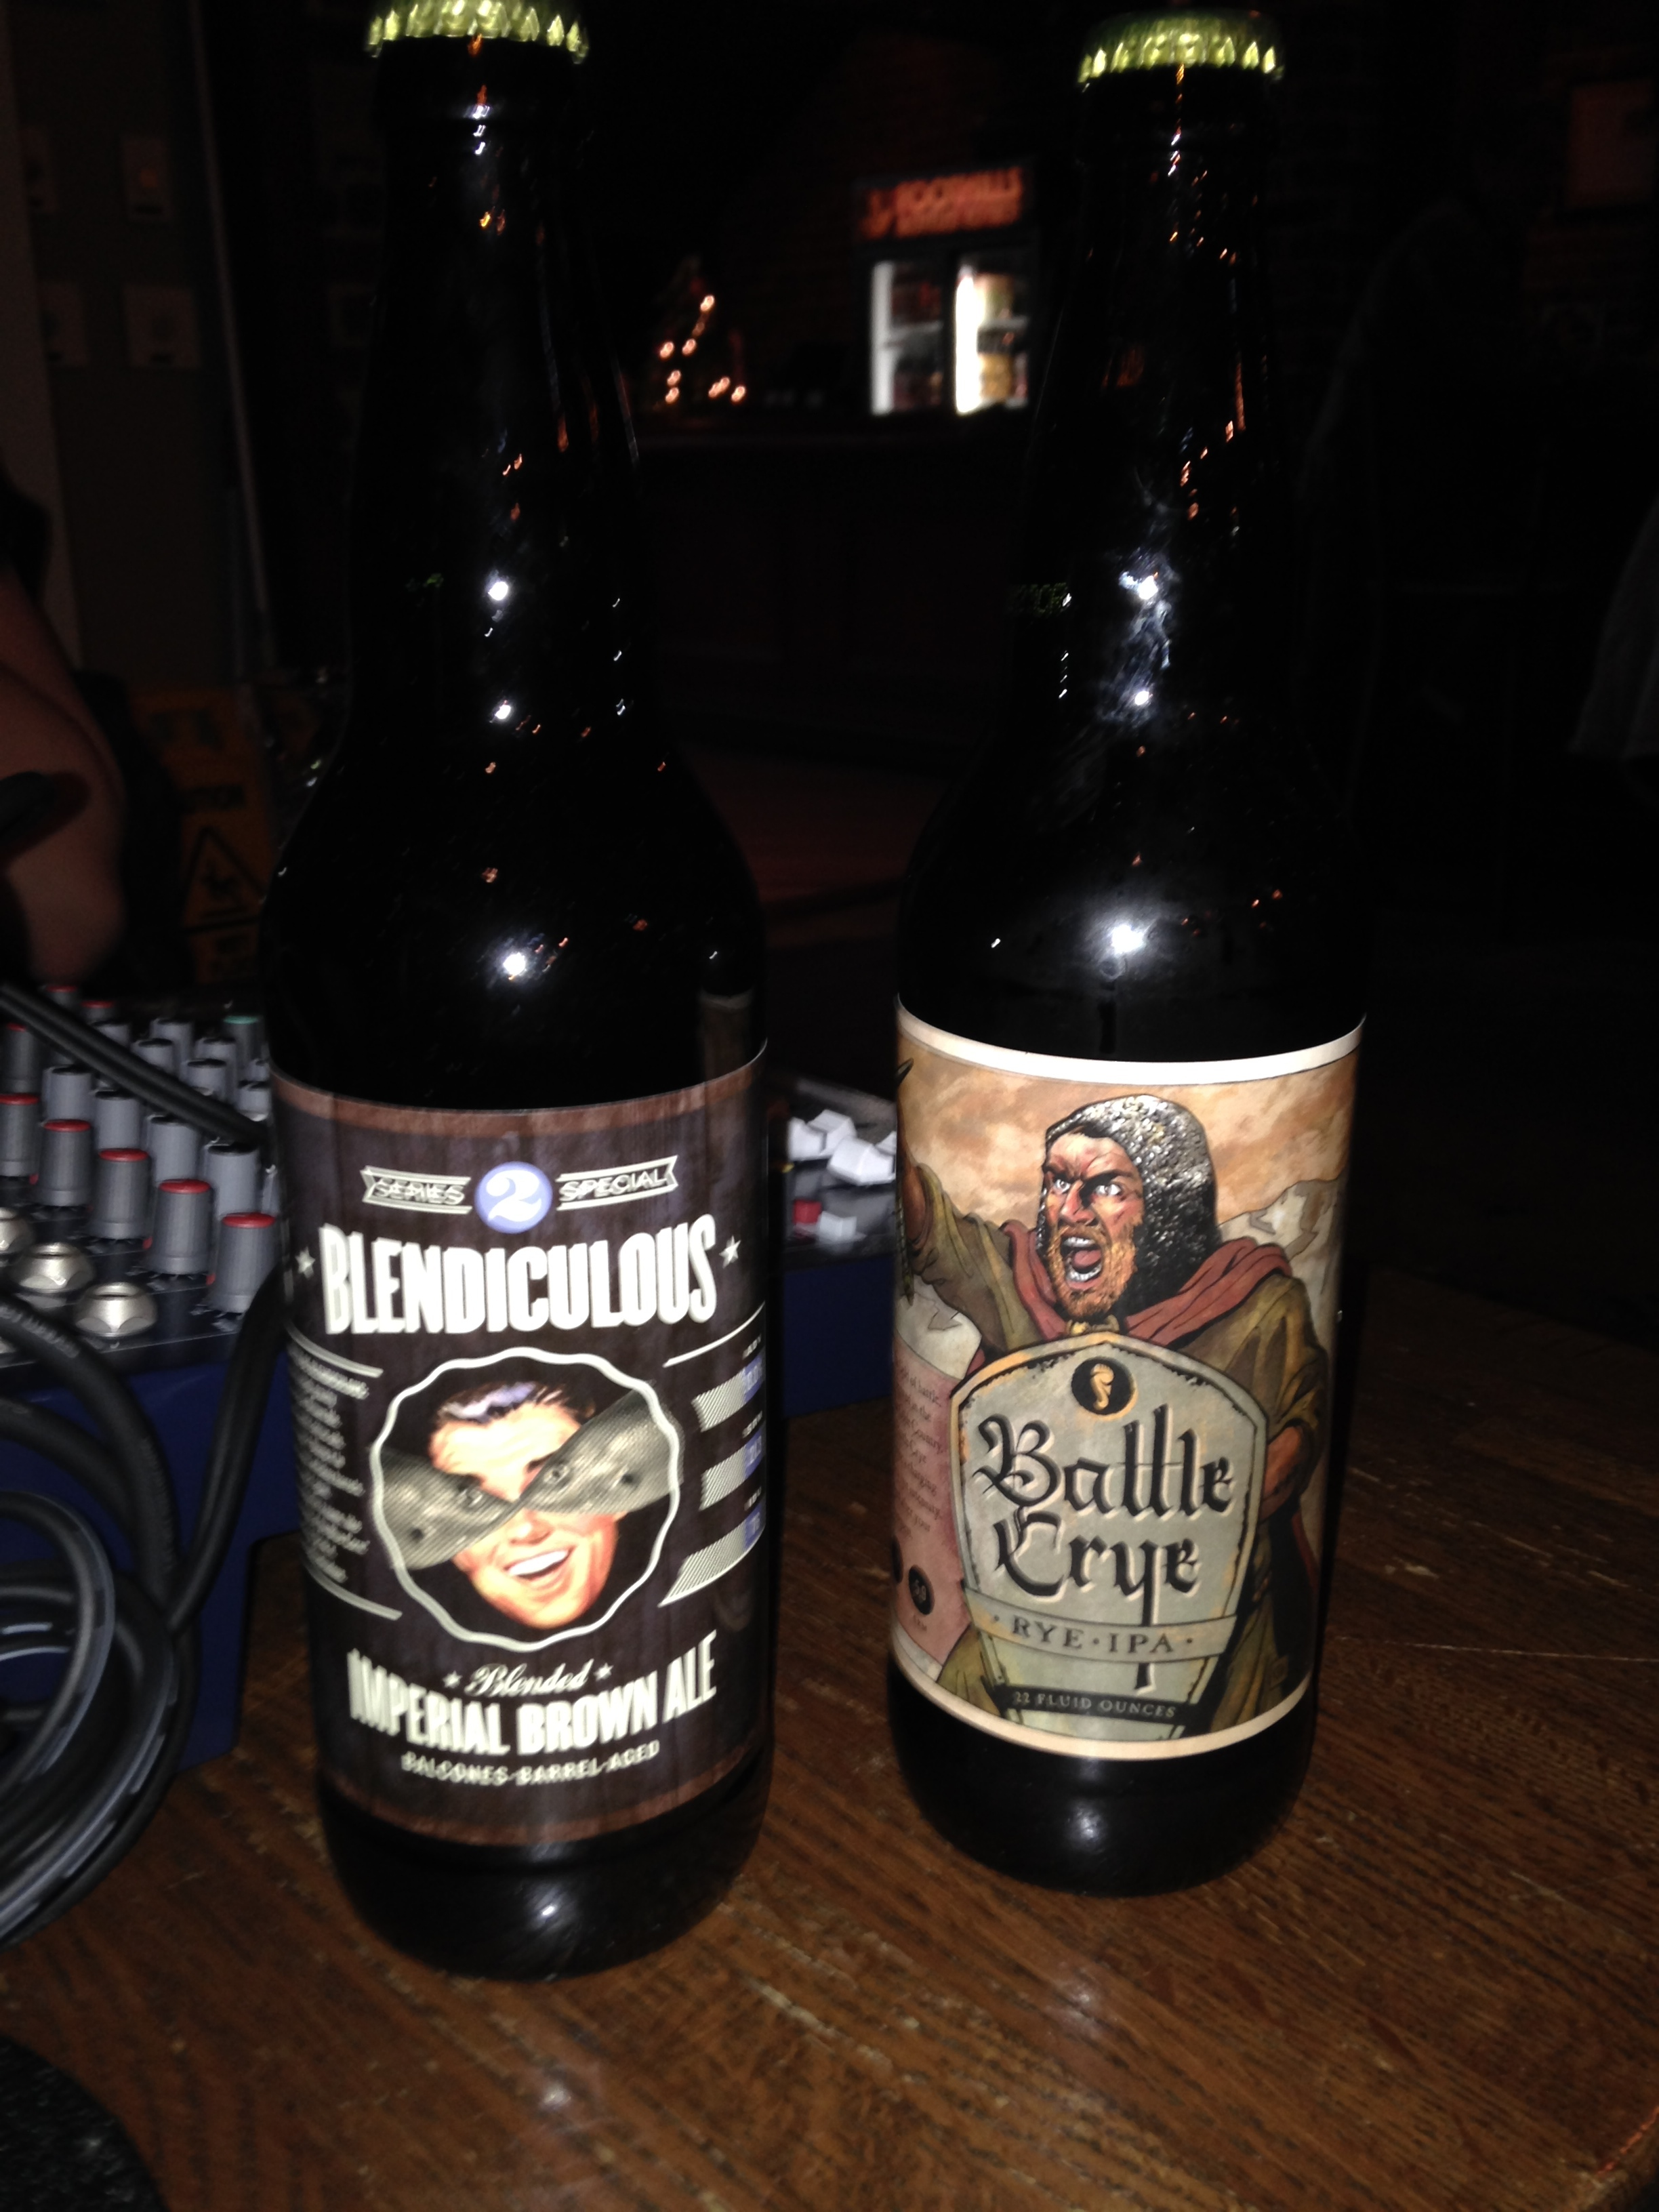 Foothills Brewing, Battle Crye Rye IPA, Blendiculous Imperial Brown Ale